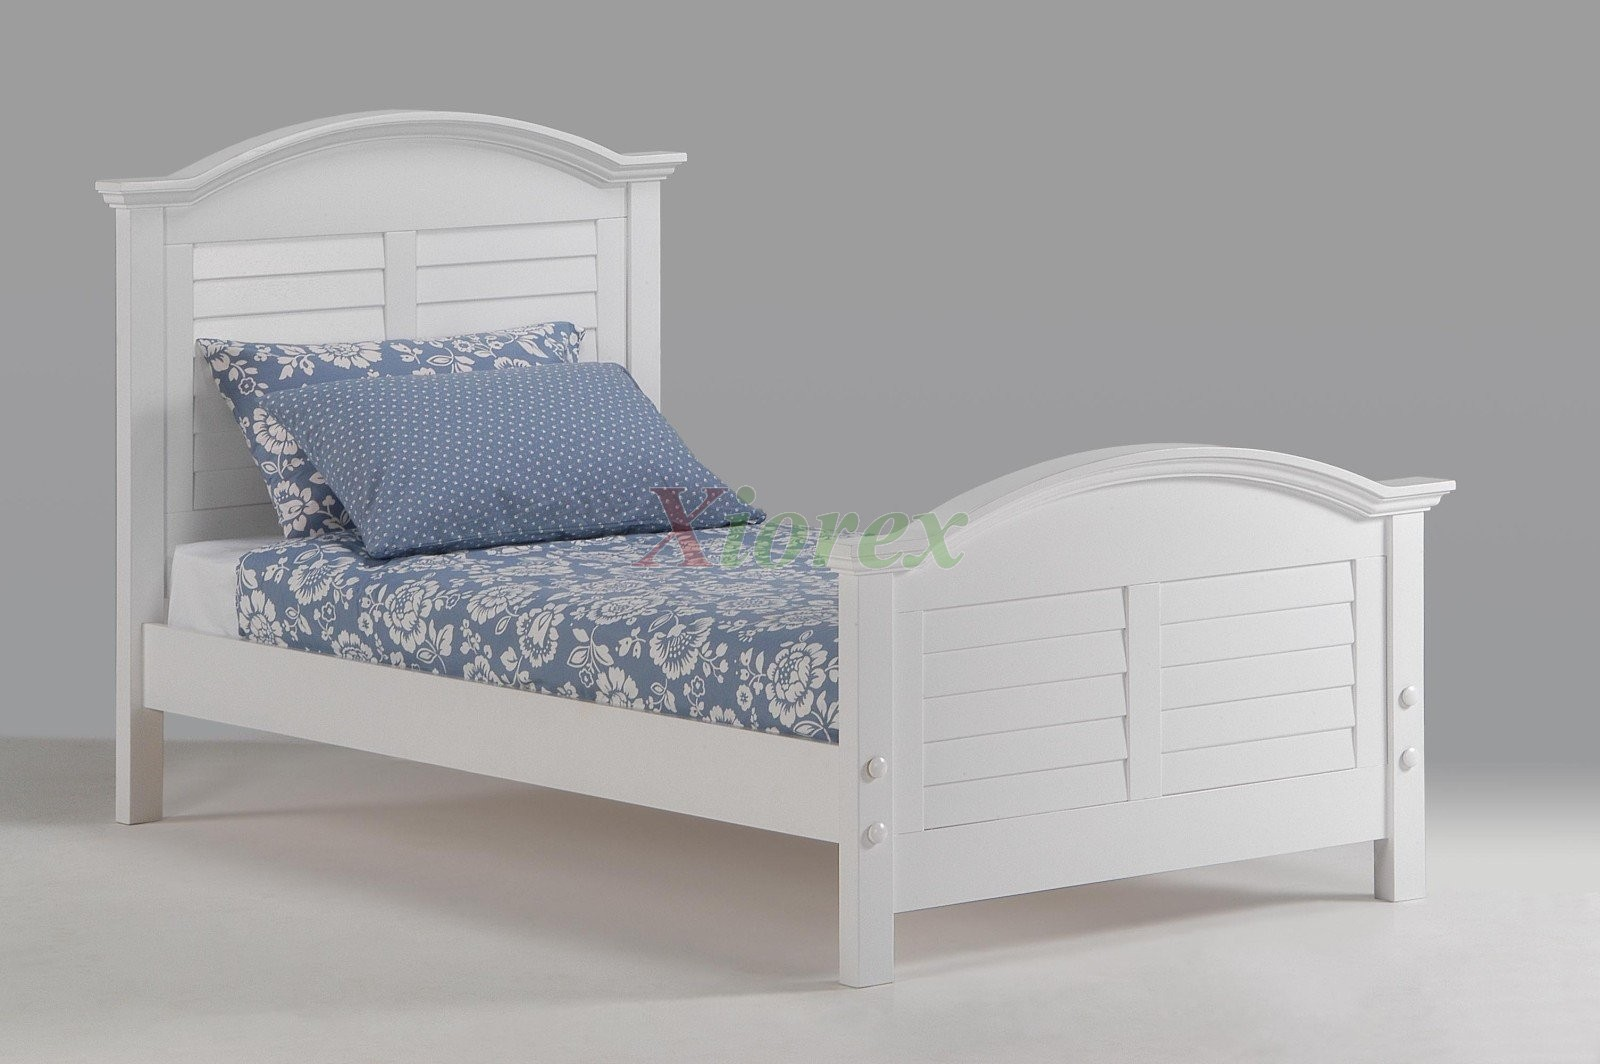 Powell White Twin Bedroom In A Box: White Bed For Girls Night And Day Sandpiper Bed With